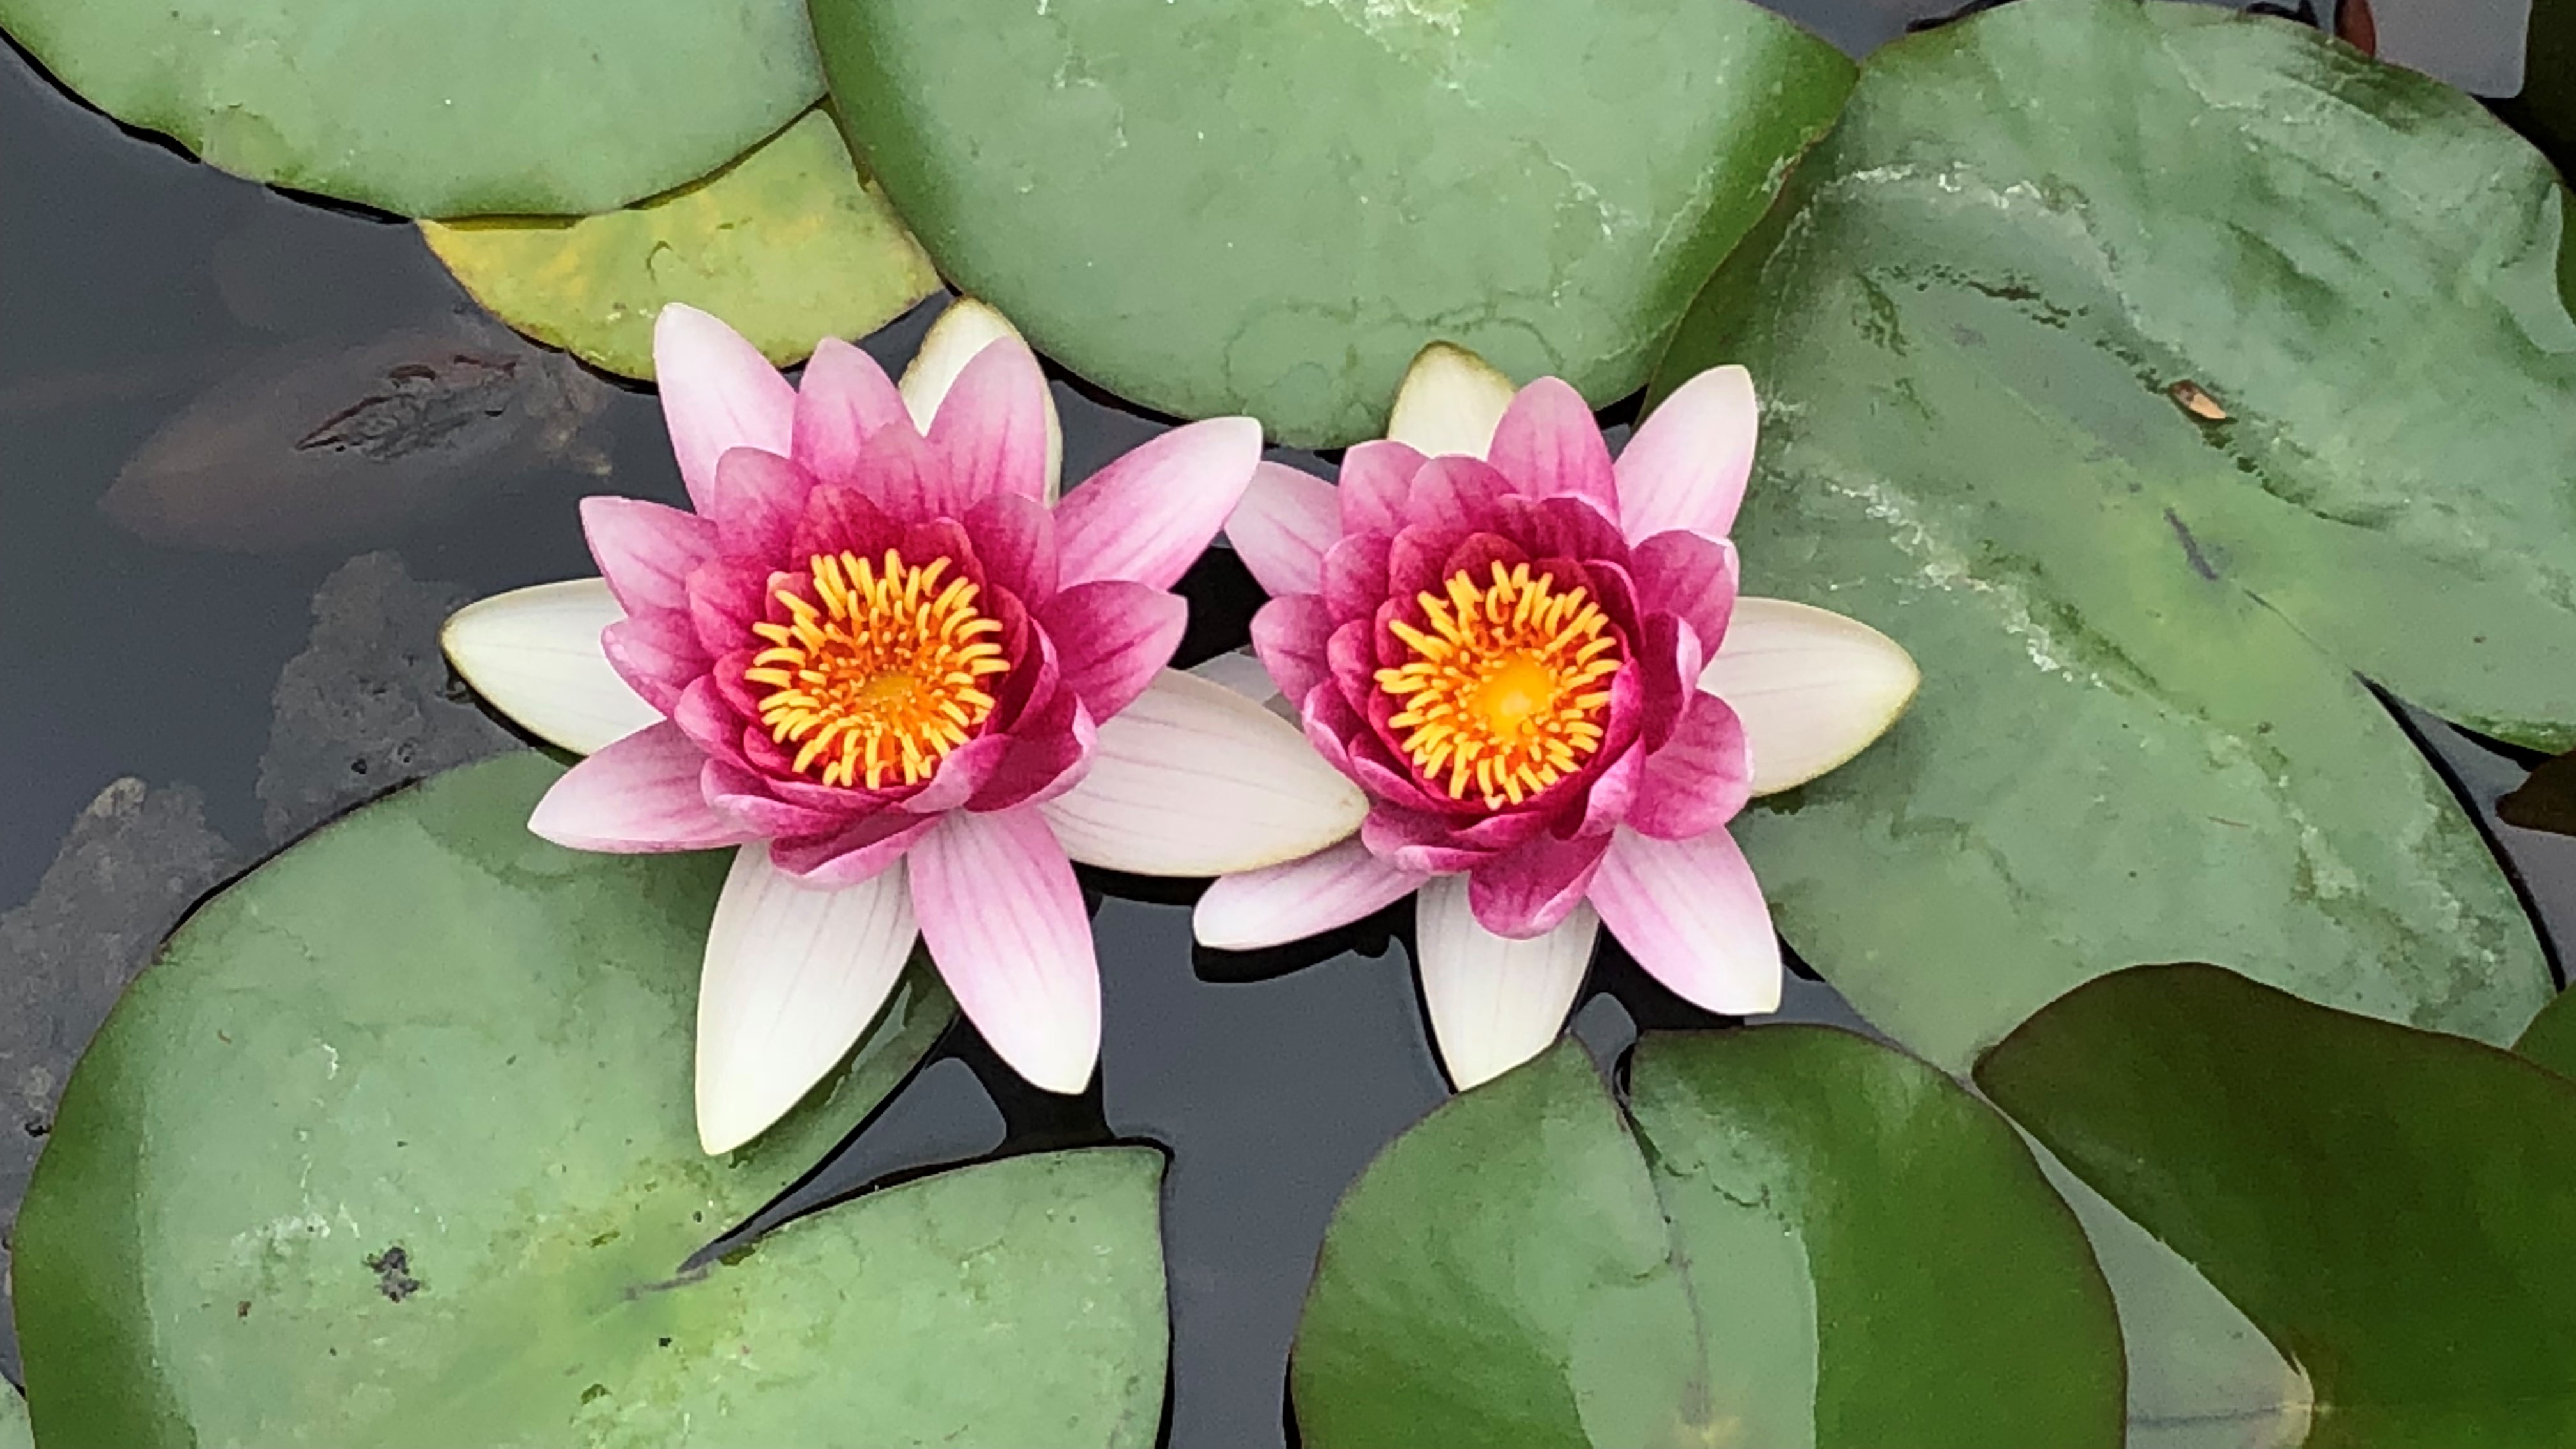 Two lotus flowers on a lilly pad in water.